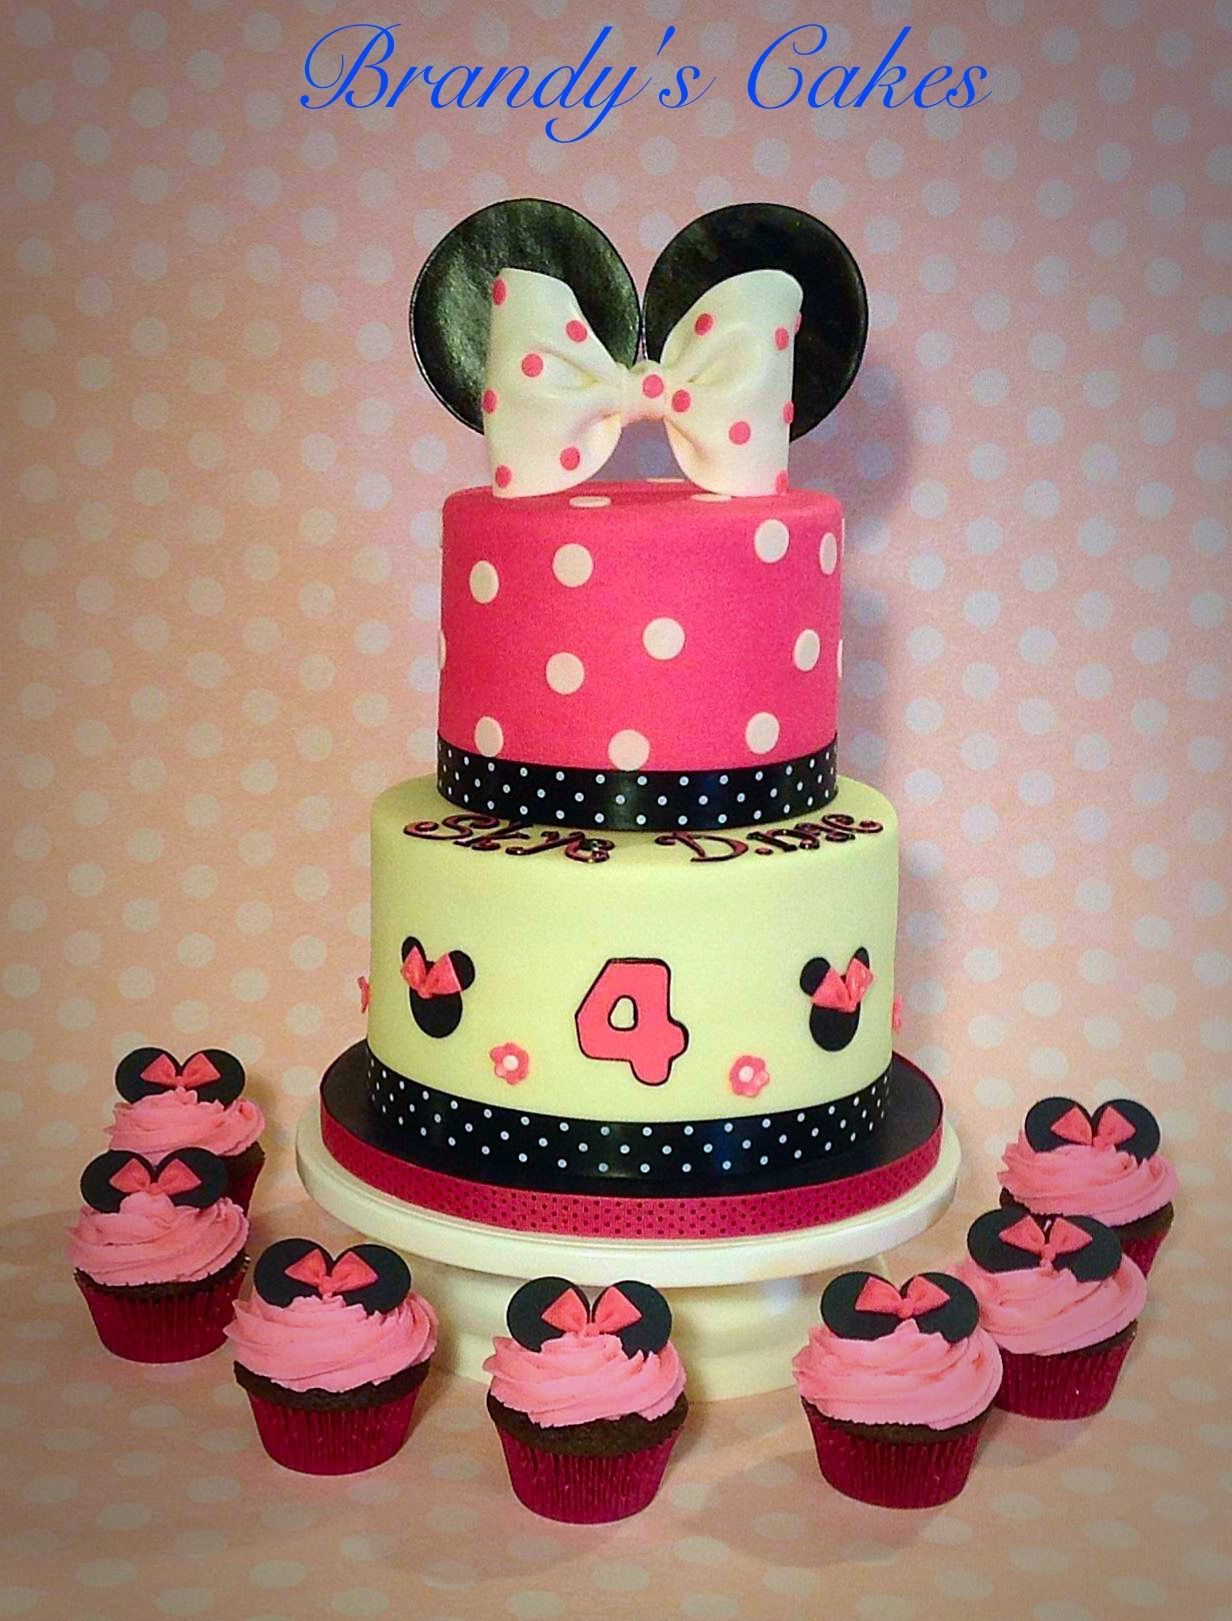 Buttercream Minnie Mouse cake with matching cupcakes.  Made by Brandy's Cakes in Weatherford, TX.